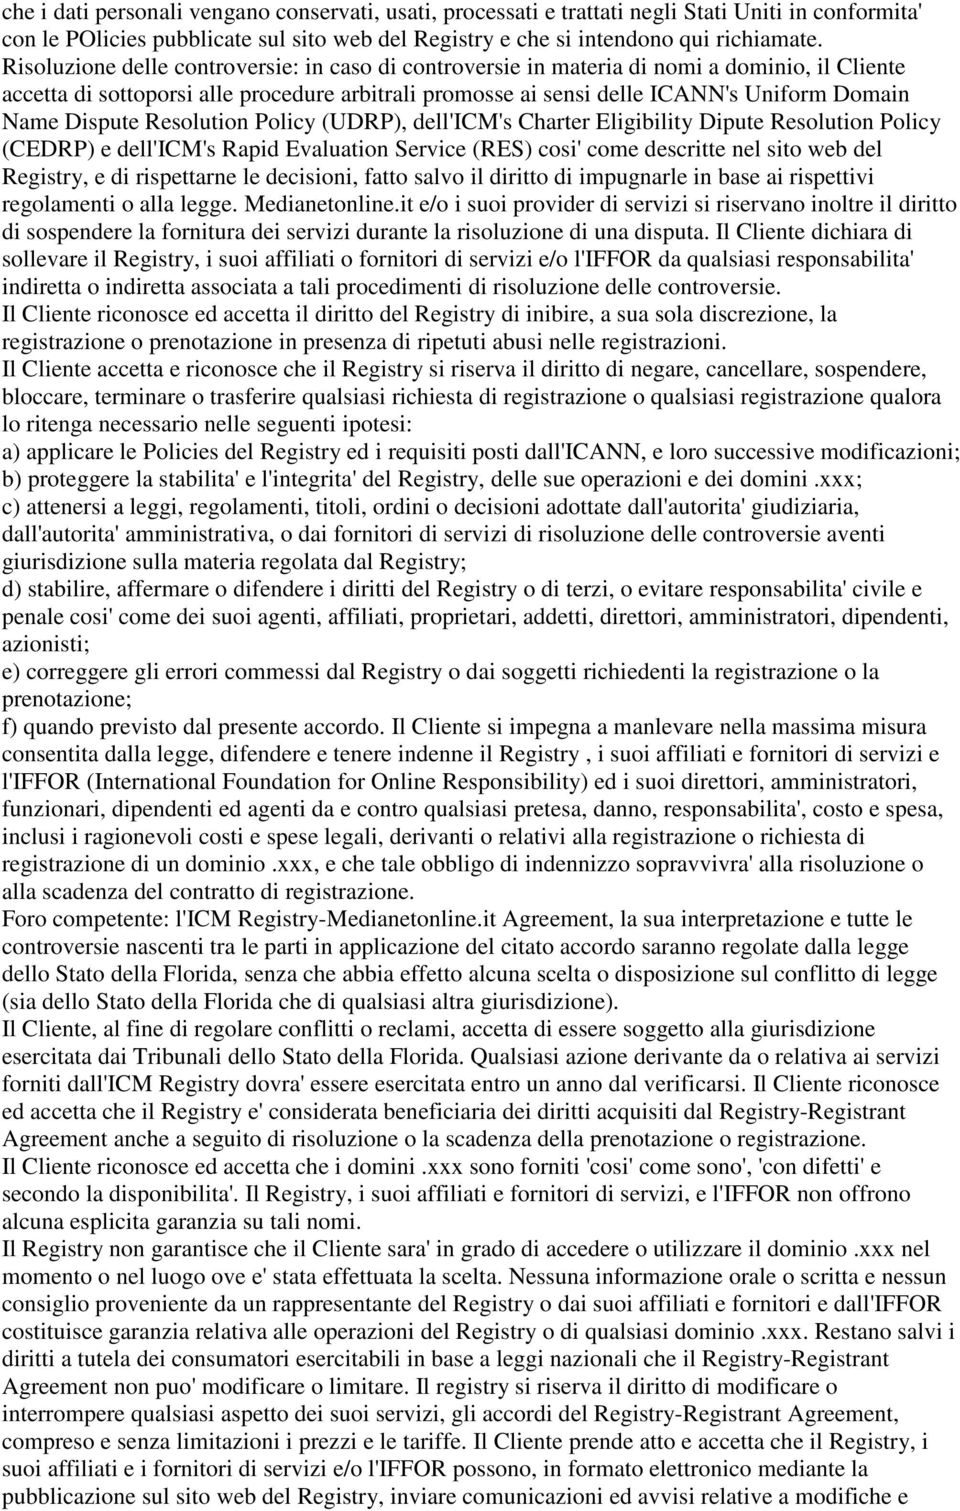 Dispute Resolution Policy (UDRP), dell'icm's Charter Eligibility Dipute Resolution Policy (CEDRP) e dell'icm's Rapid Evaluation Service (RES) cosi' come descritte nel sito web del Registry, e di